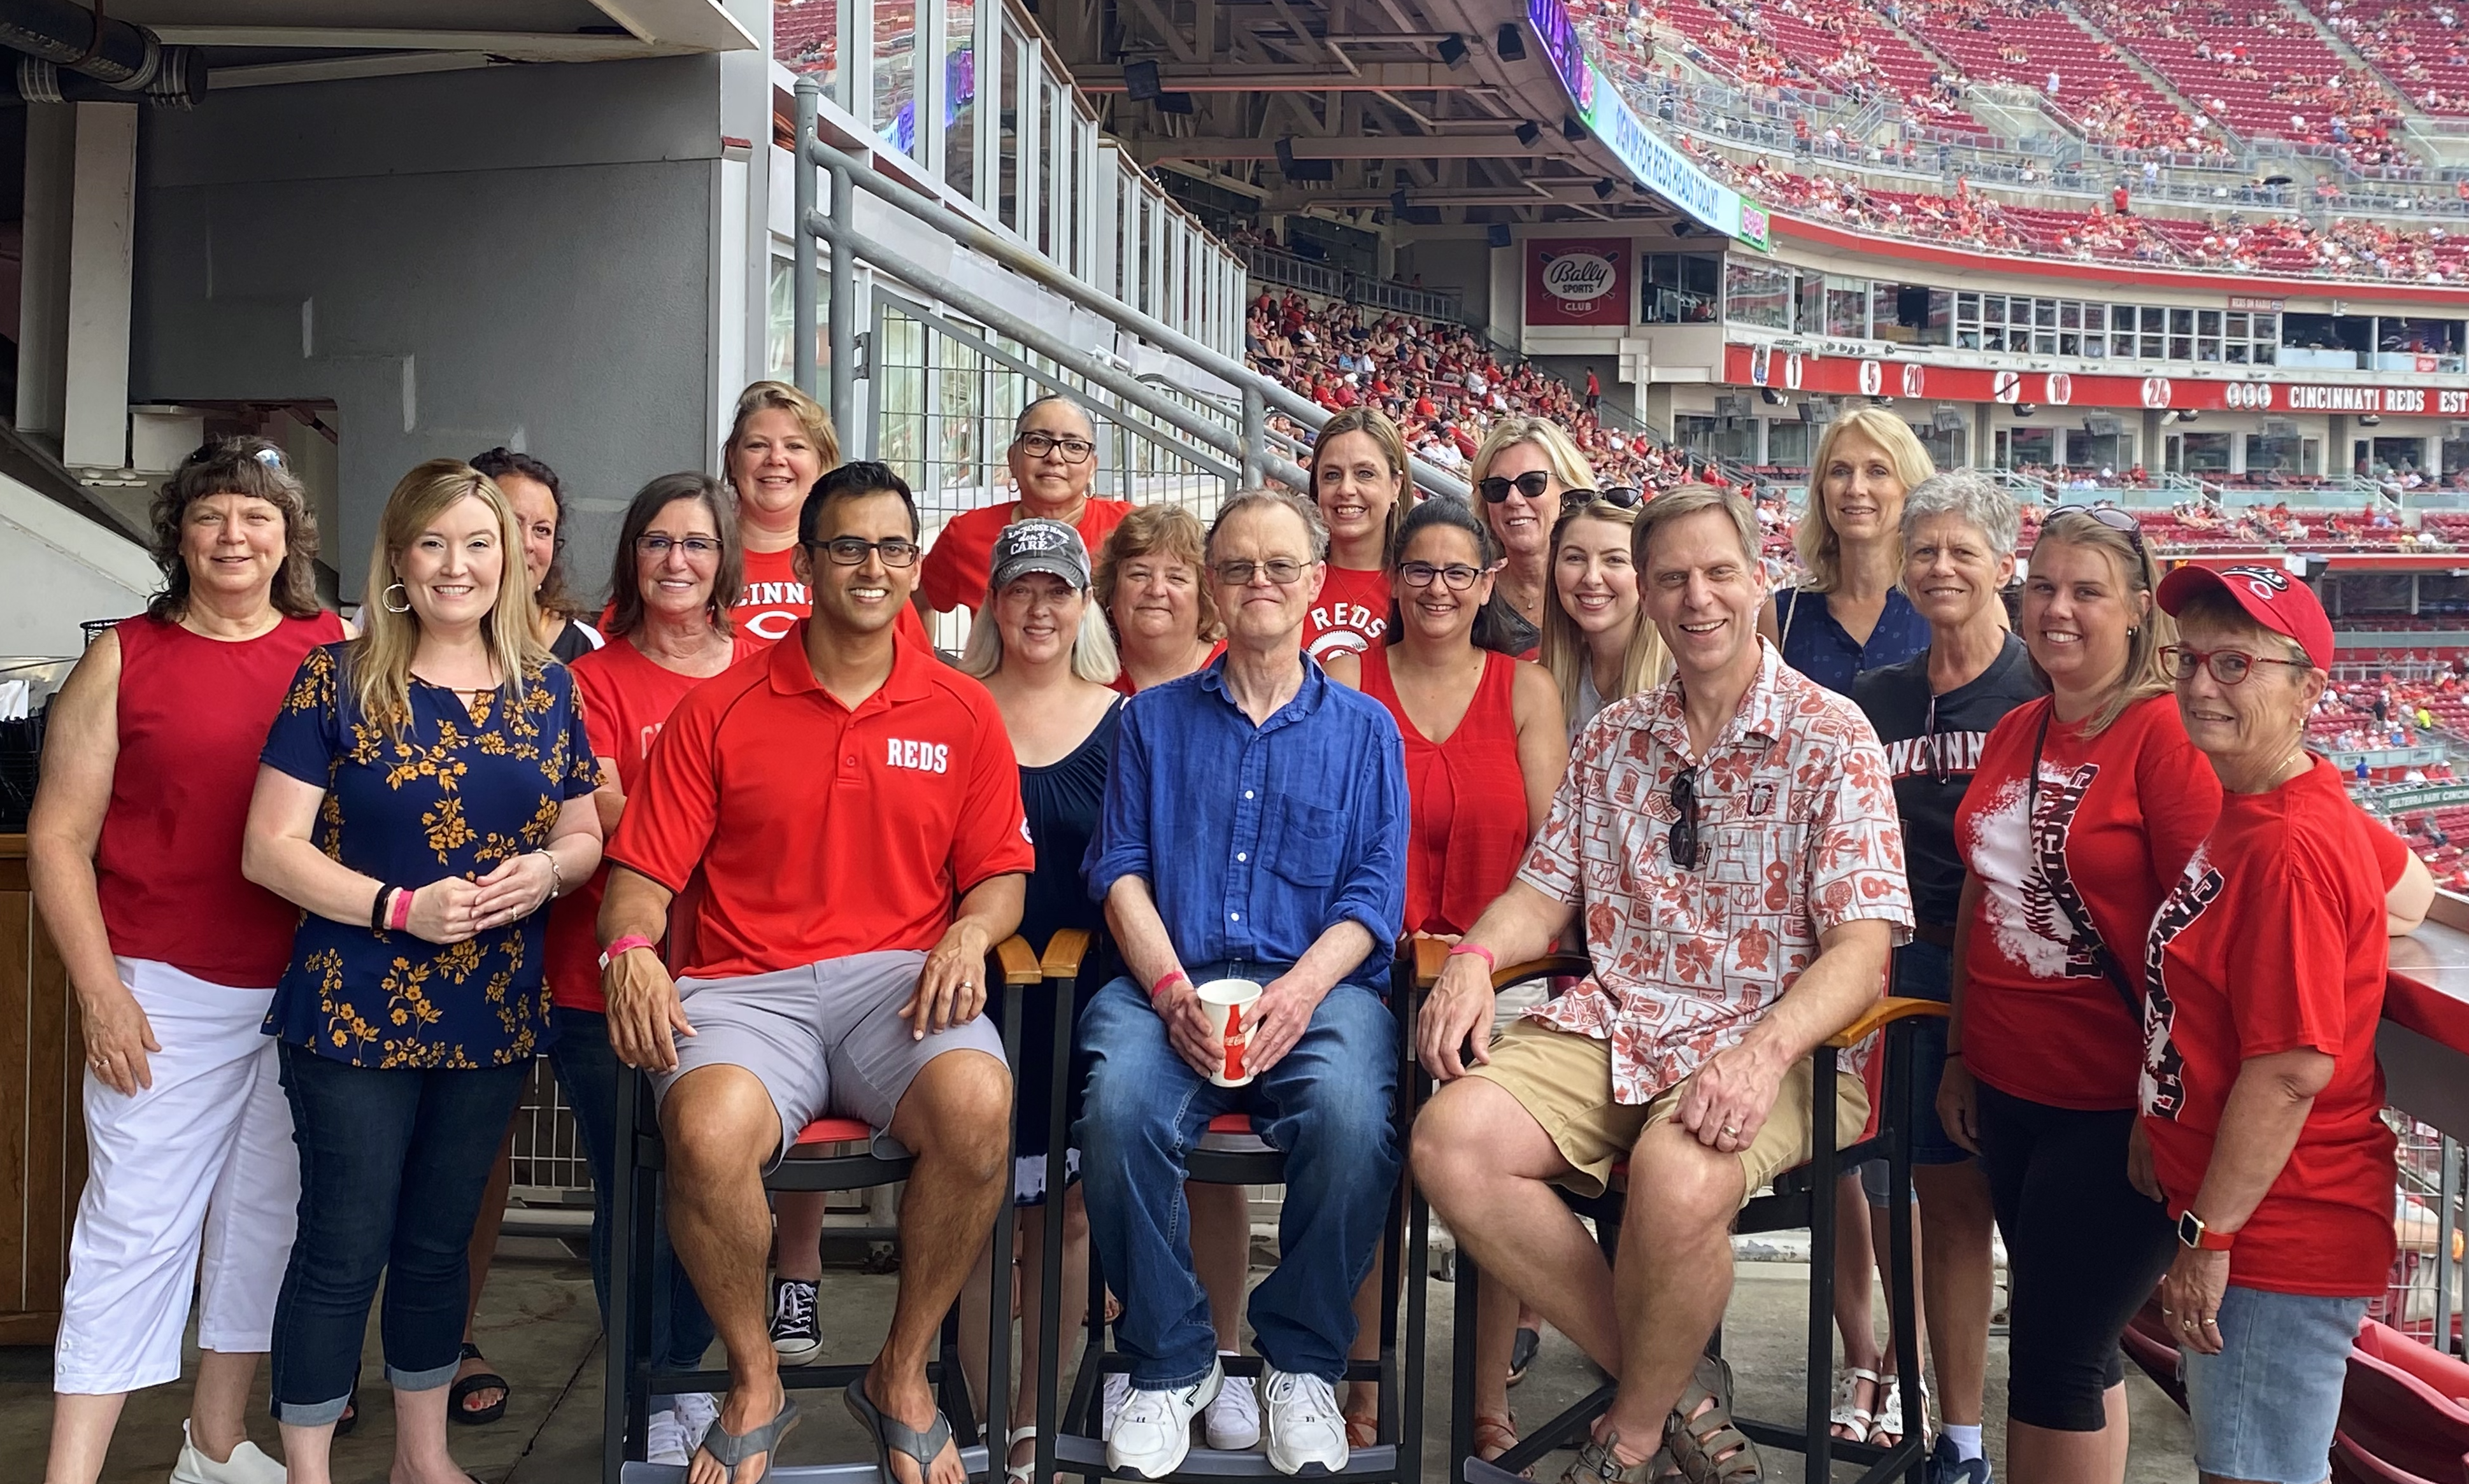 Allergy and Asthma Care Staff at Cincinnati Reds Game